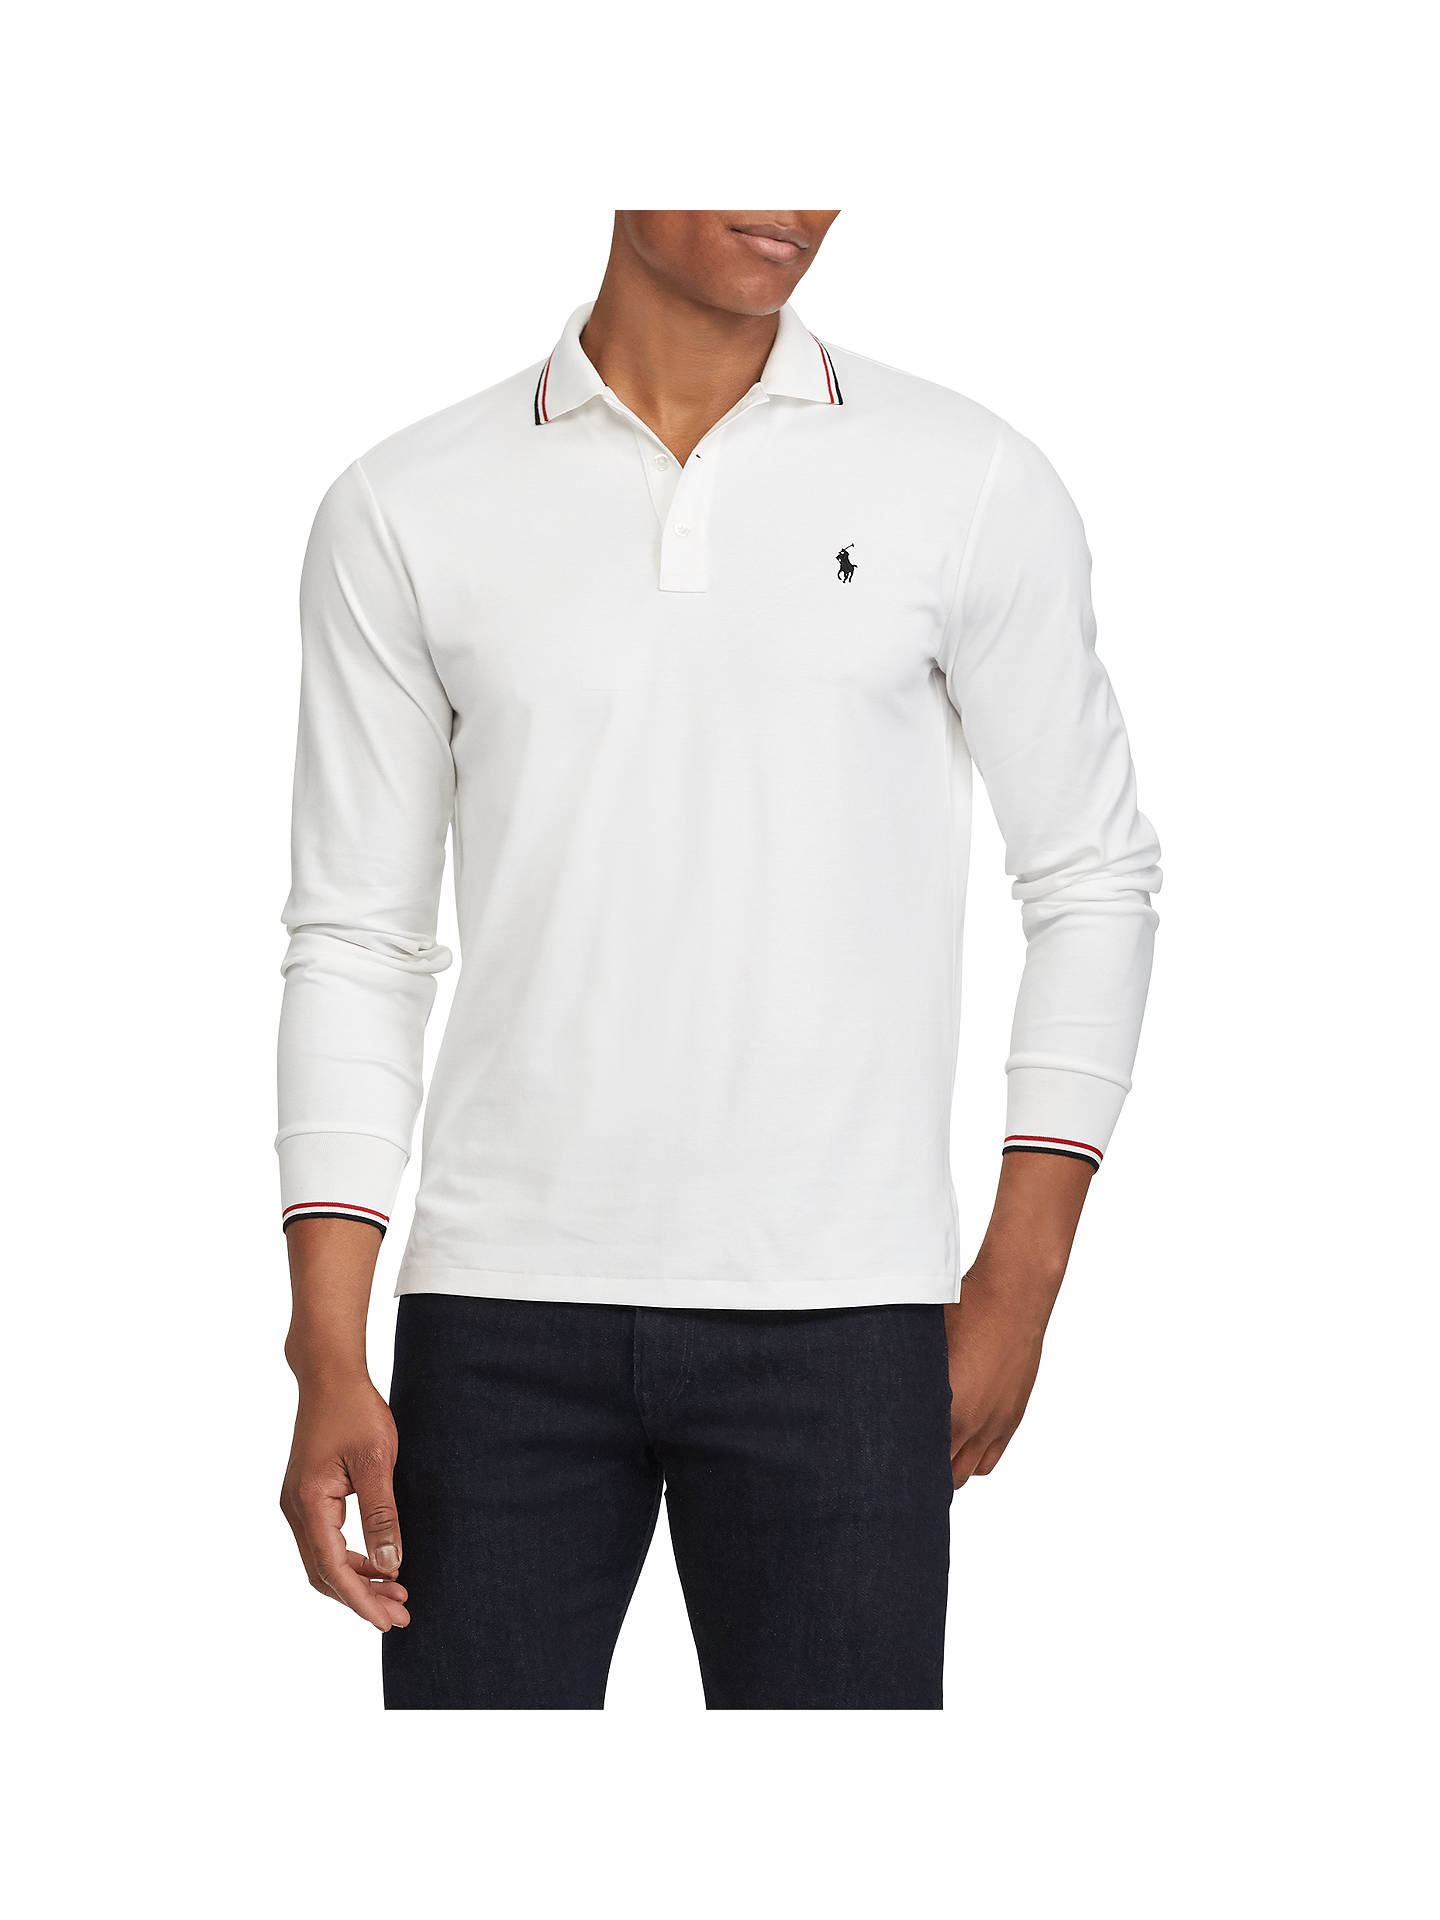 4138c0307 ... new style buypolo ralph lauren custom slim fit polo top white s online  at johnlewis.